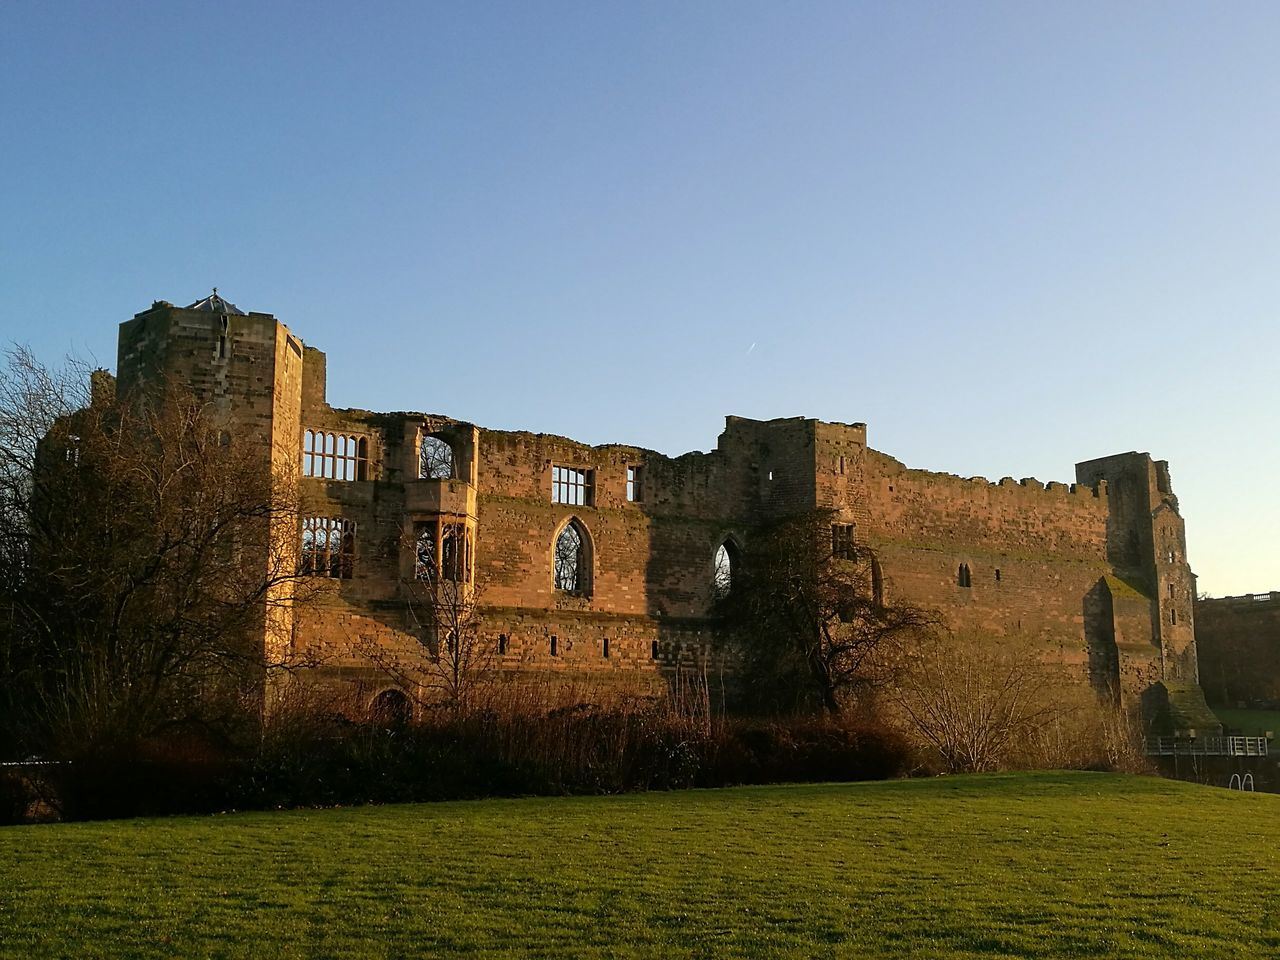 Architecture Ruins Winter Beautiful Place Castle Ruin Newark Castle No People Cultures Grass Outdoors History Architecture The Past Sky Old Ruin Day War Wonderlust Magic Hour & Weather Magic Hour Romantic